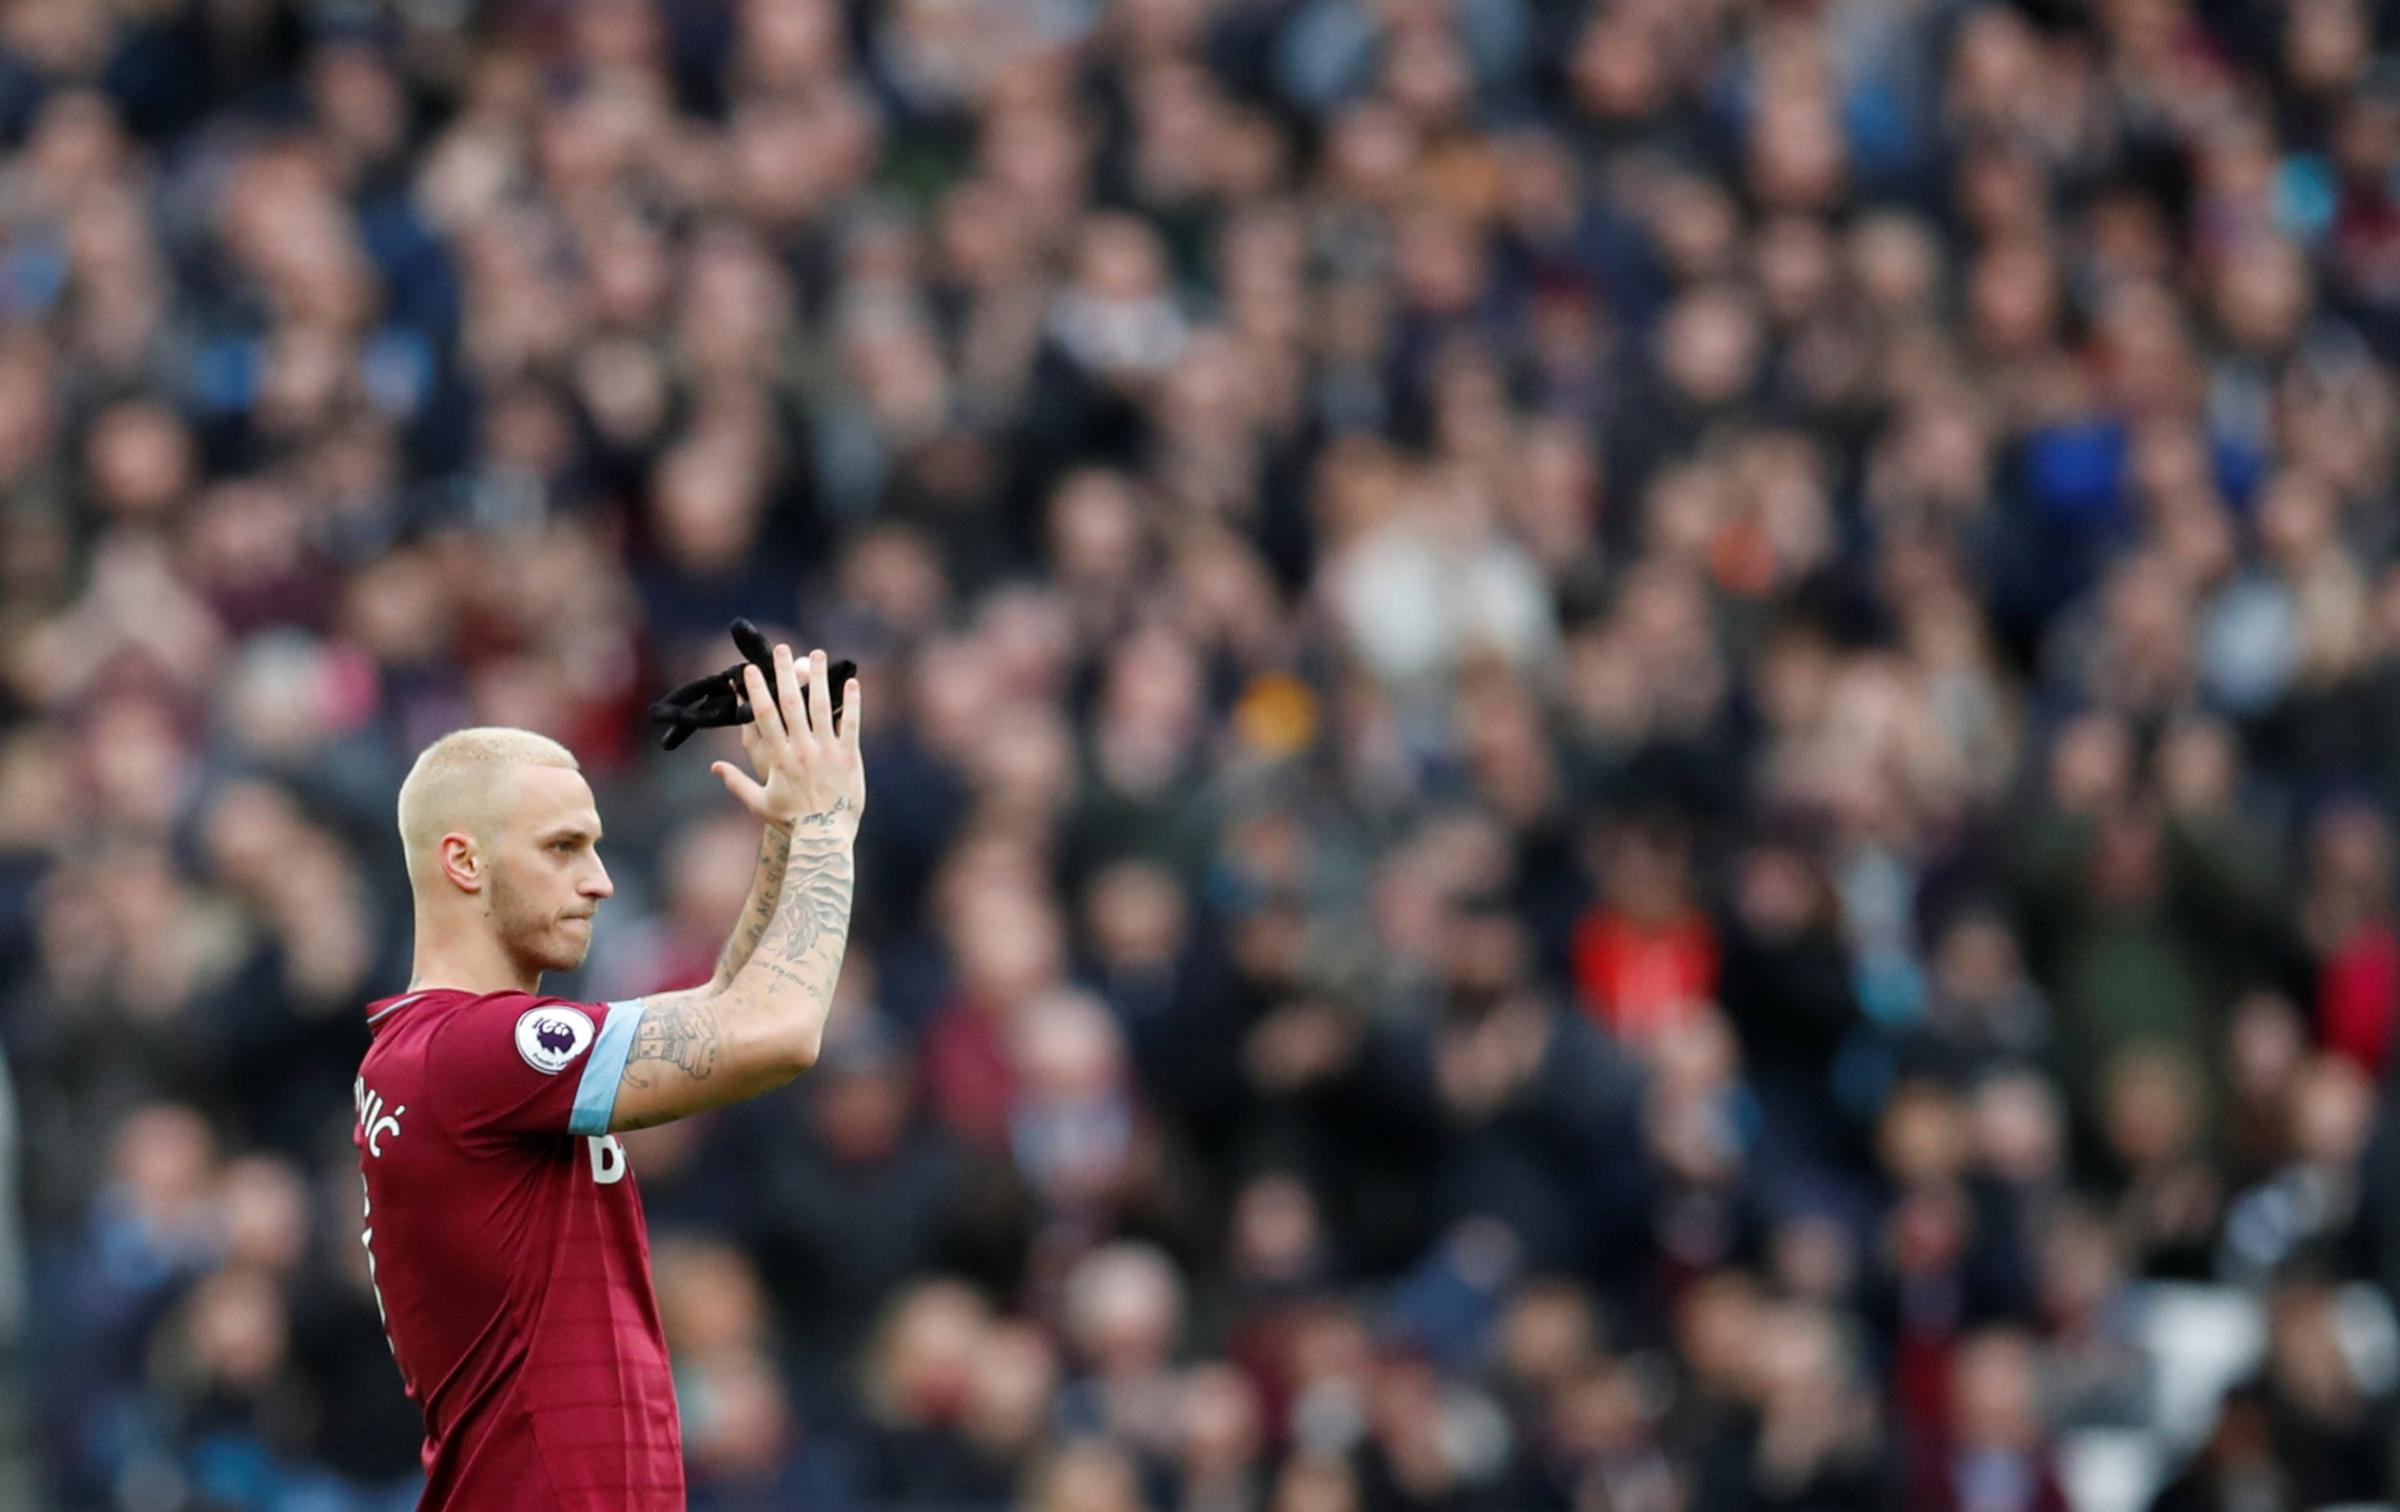 Marko Arnautovic applauds the West Ham fans after being substituted in last week's 1-0 win over Arsenal. Picture: Action Images